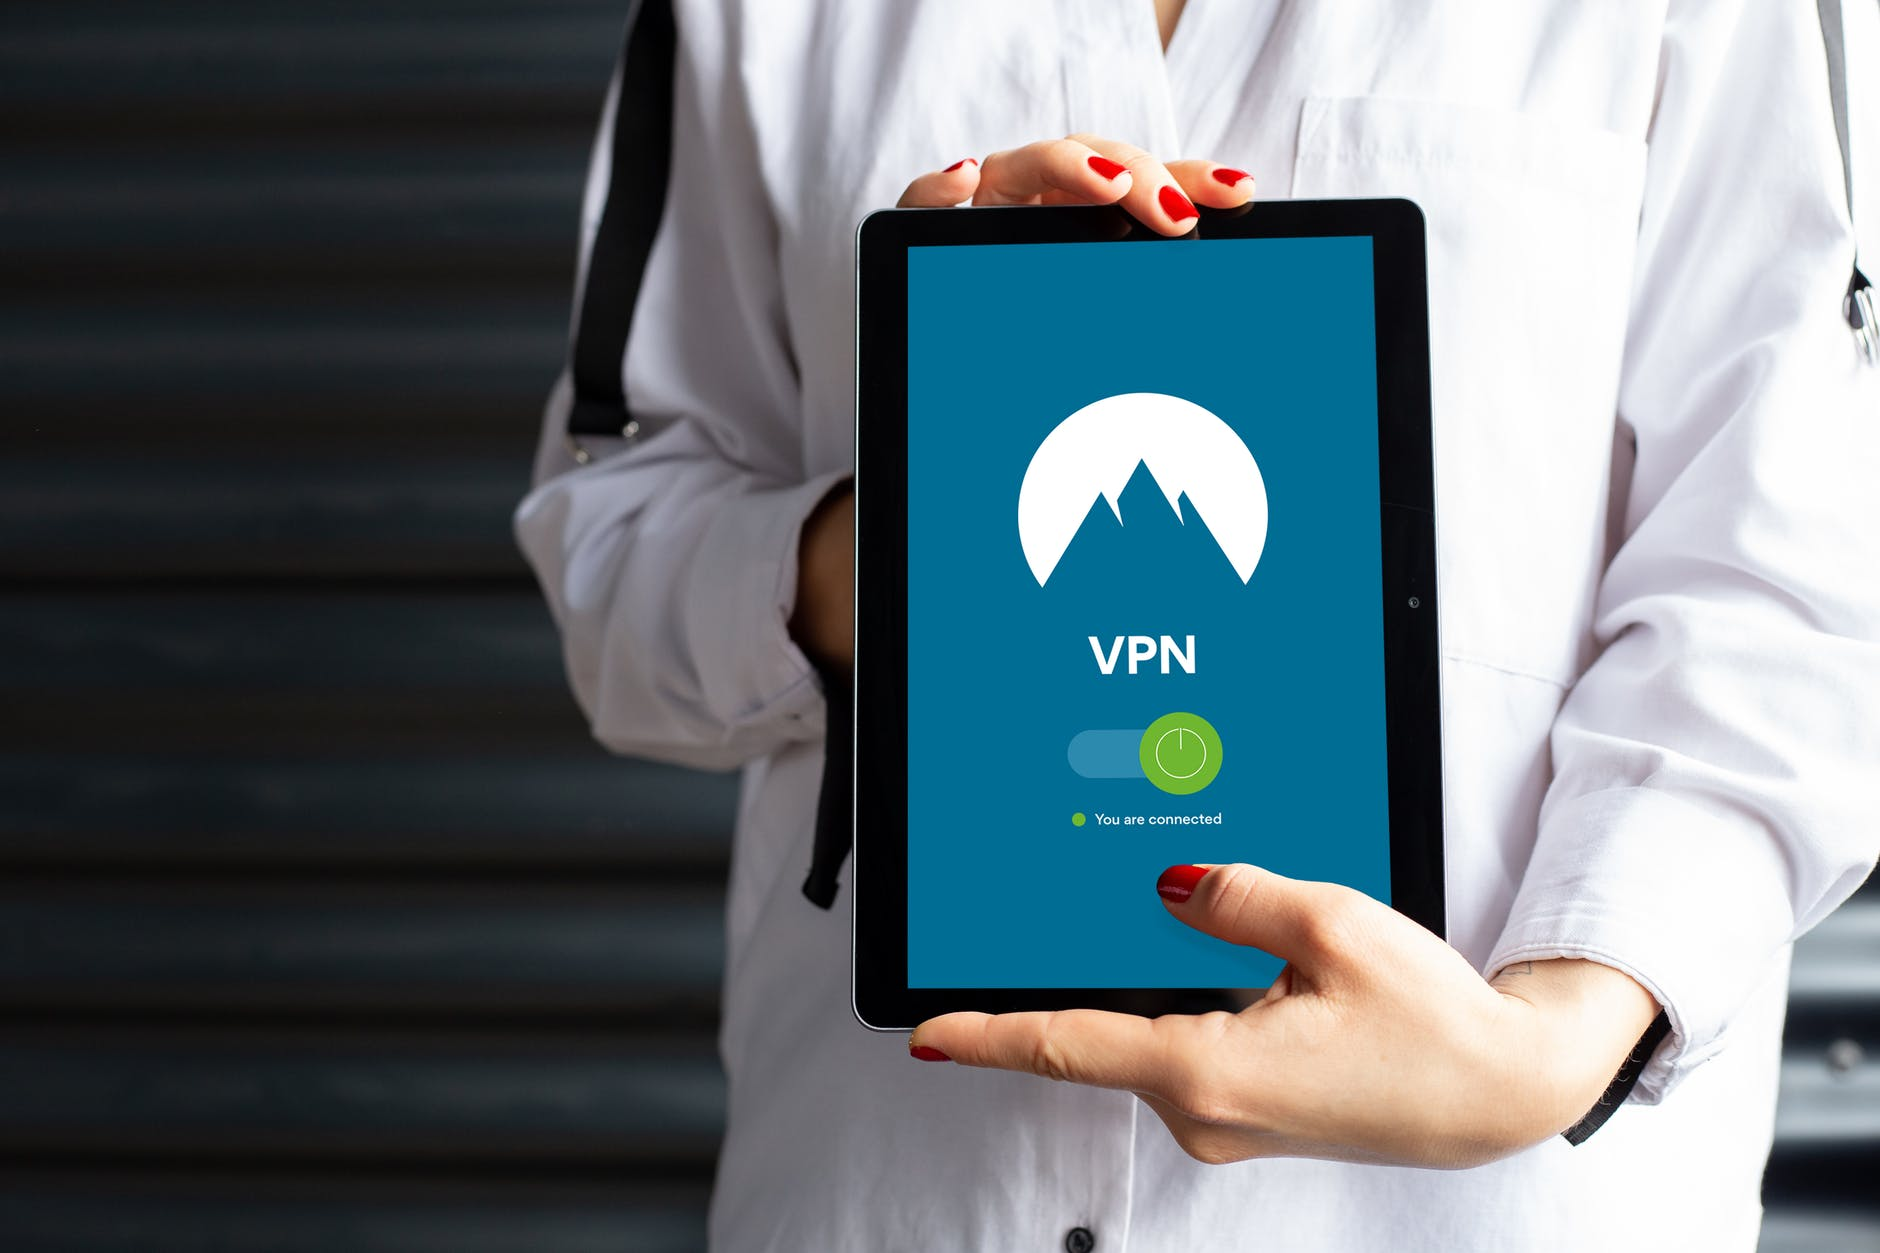 Use VPN to Remotely Access Your Office Network